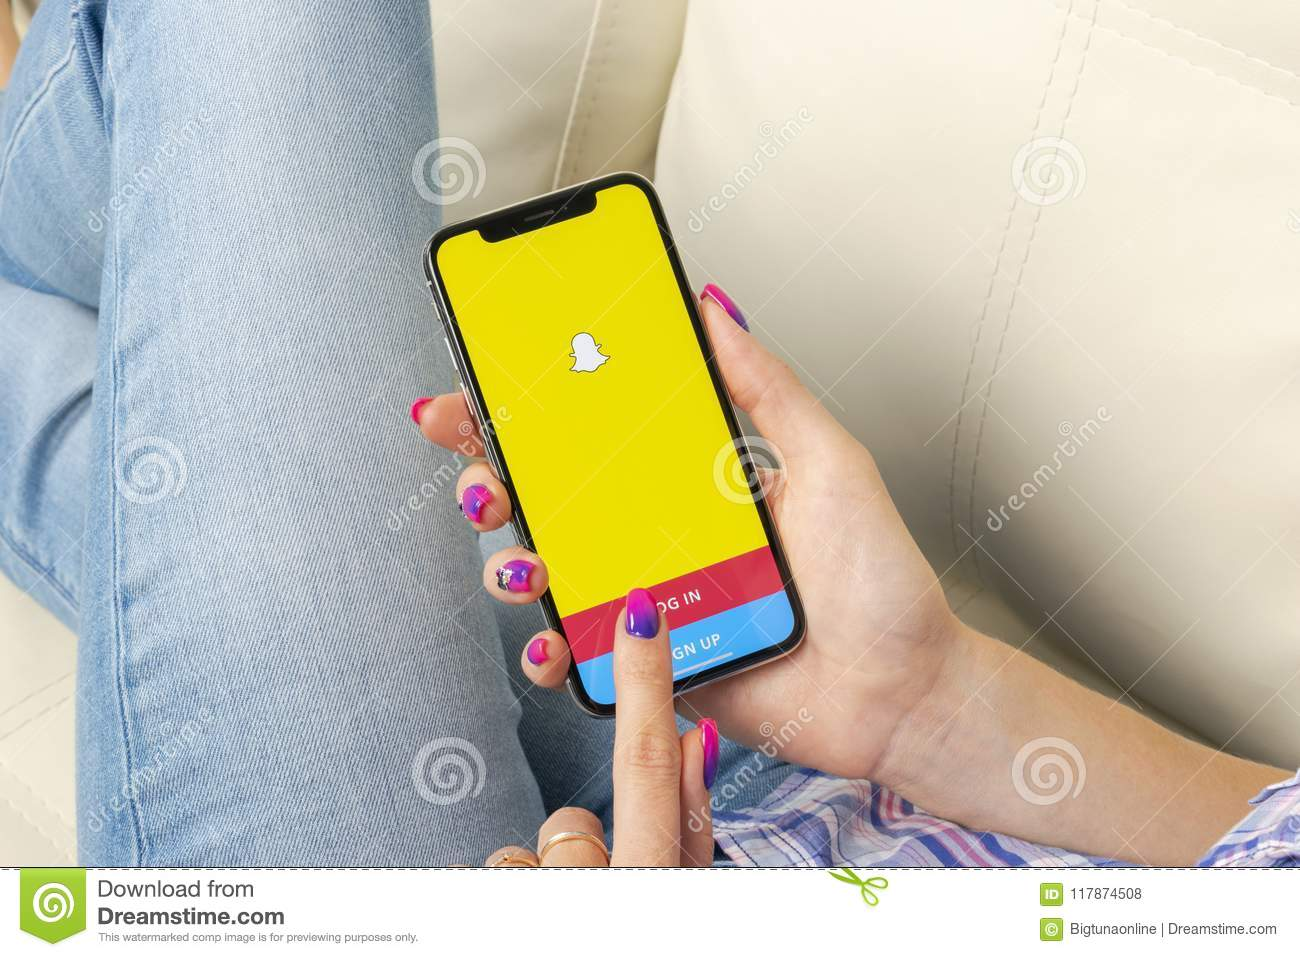 Snapchat Application Icon On Apple IPhone X Smartphone Screen Close